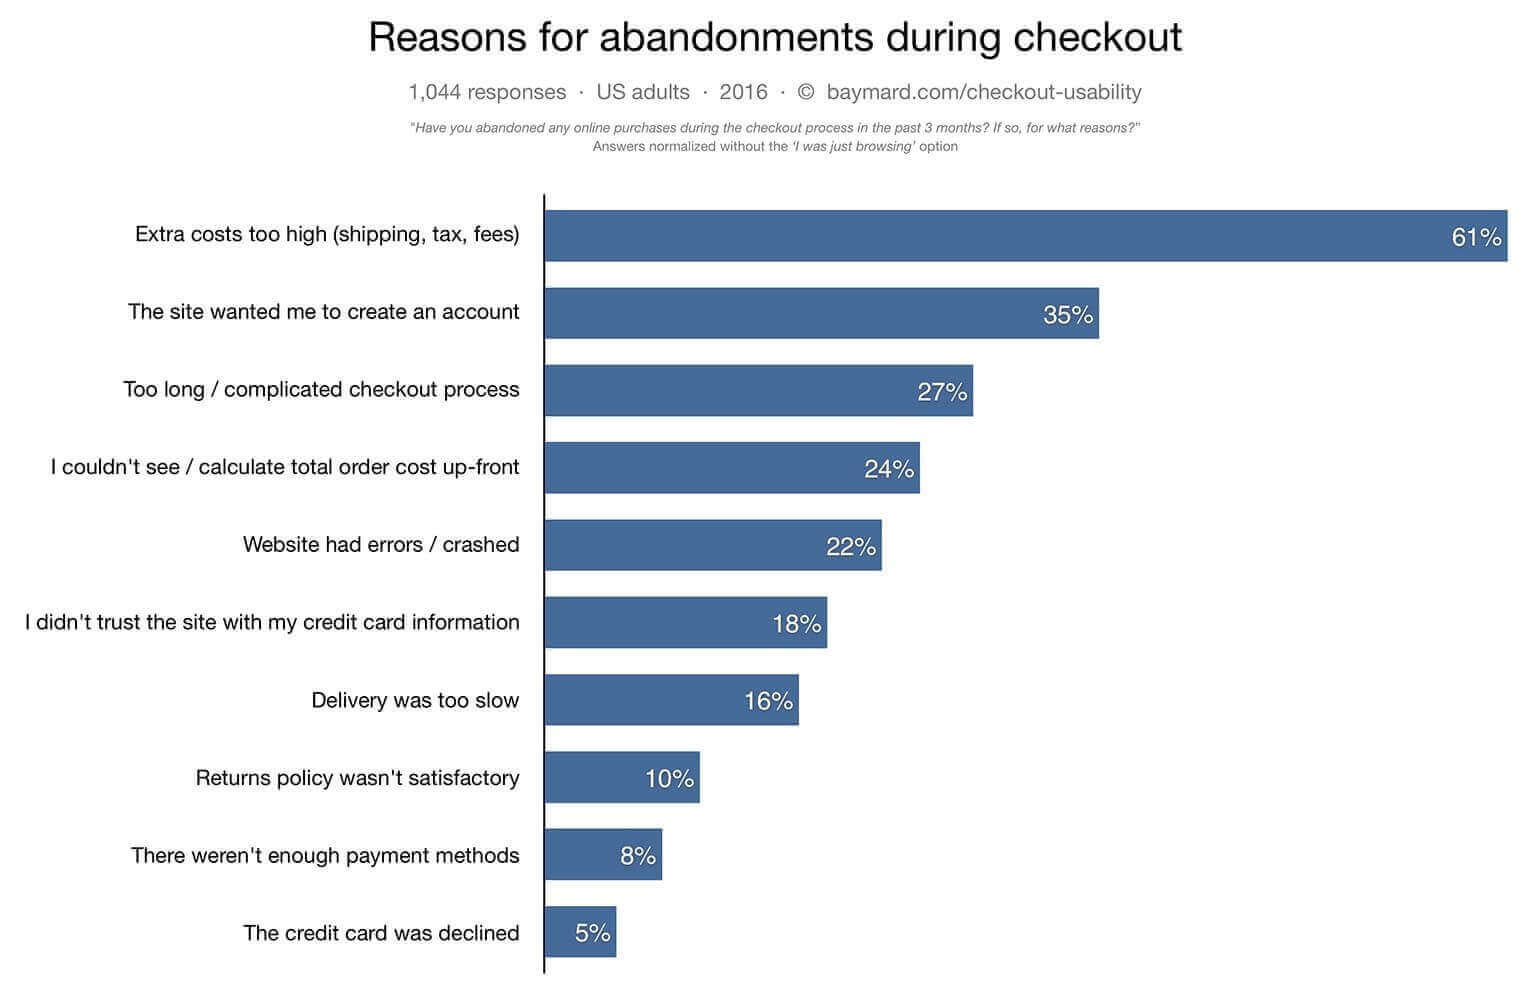 Baymart Institute chart represention the reasons for abandonments during checkout by customers online